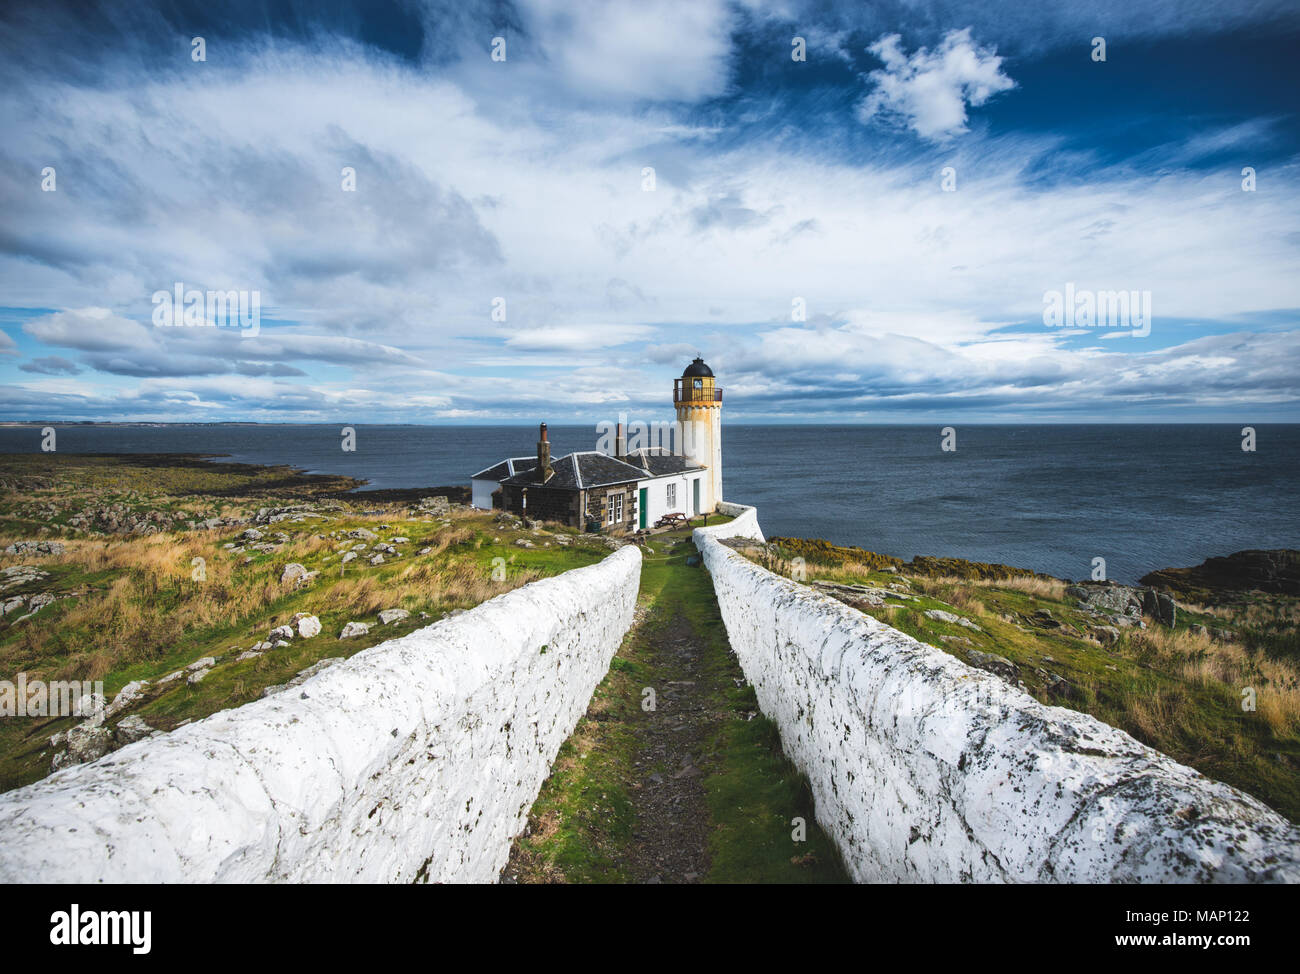 Pictures and landscapes from Scotland. Photo: Alessandro Bosio/Alamy Stock Photo